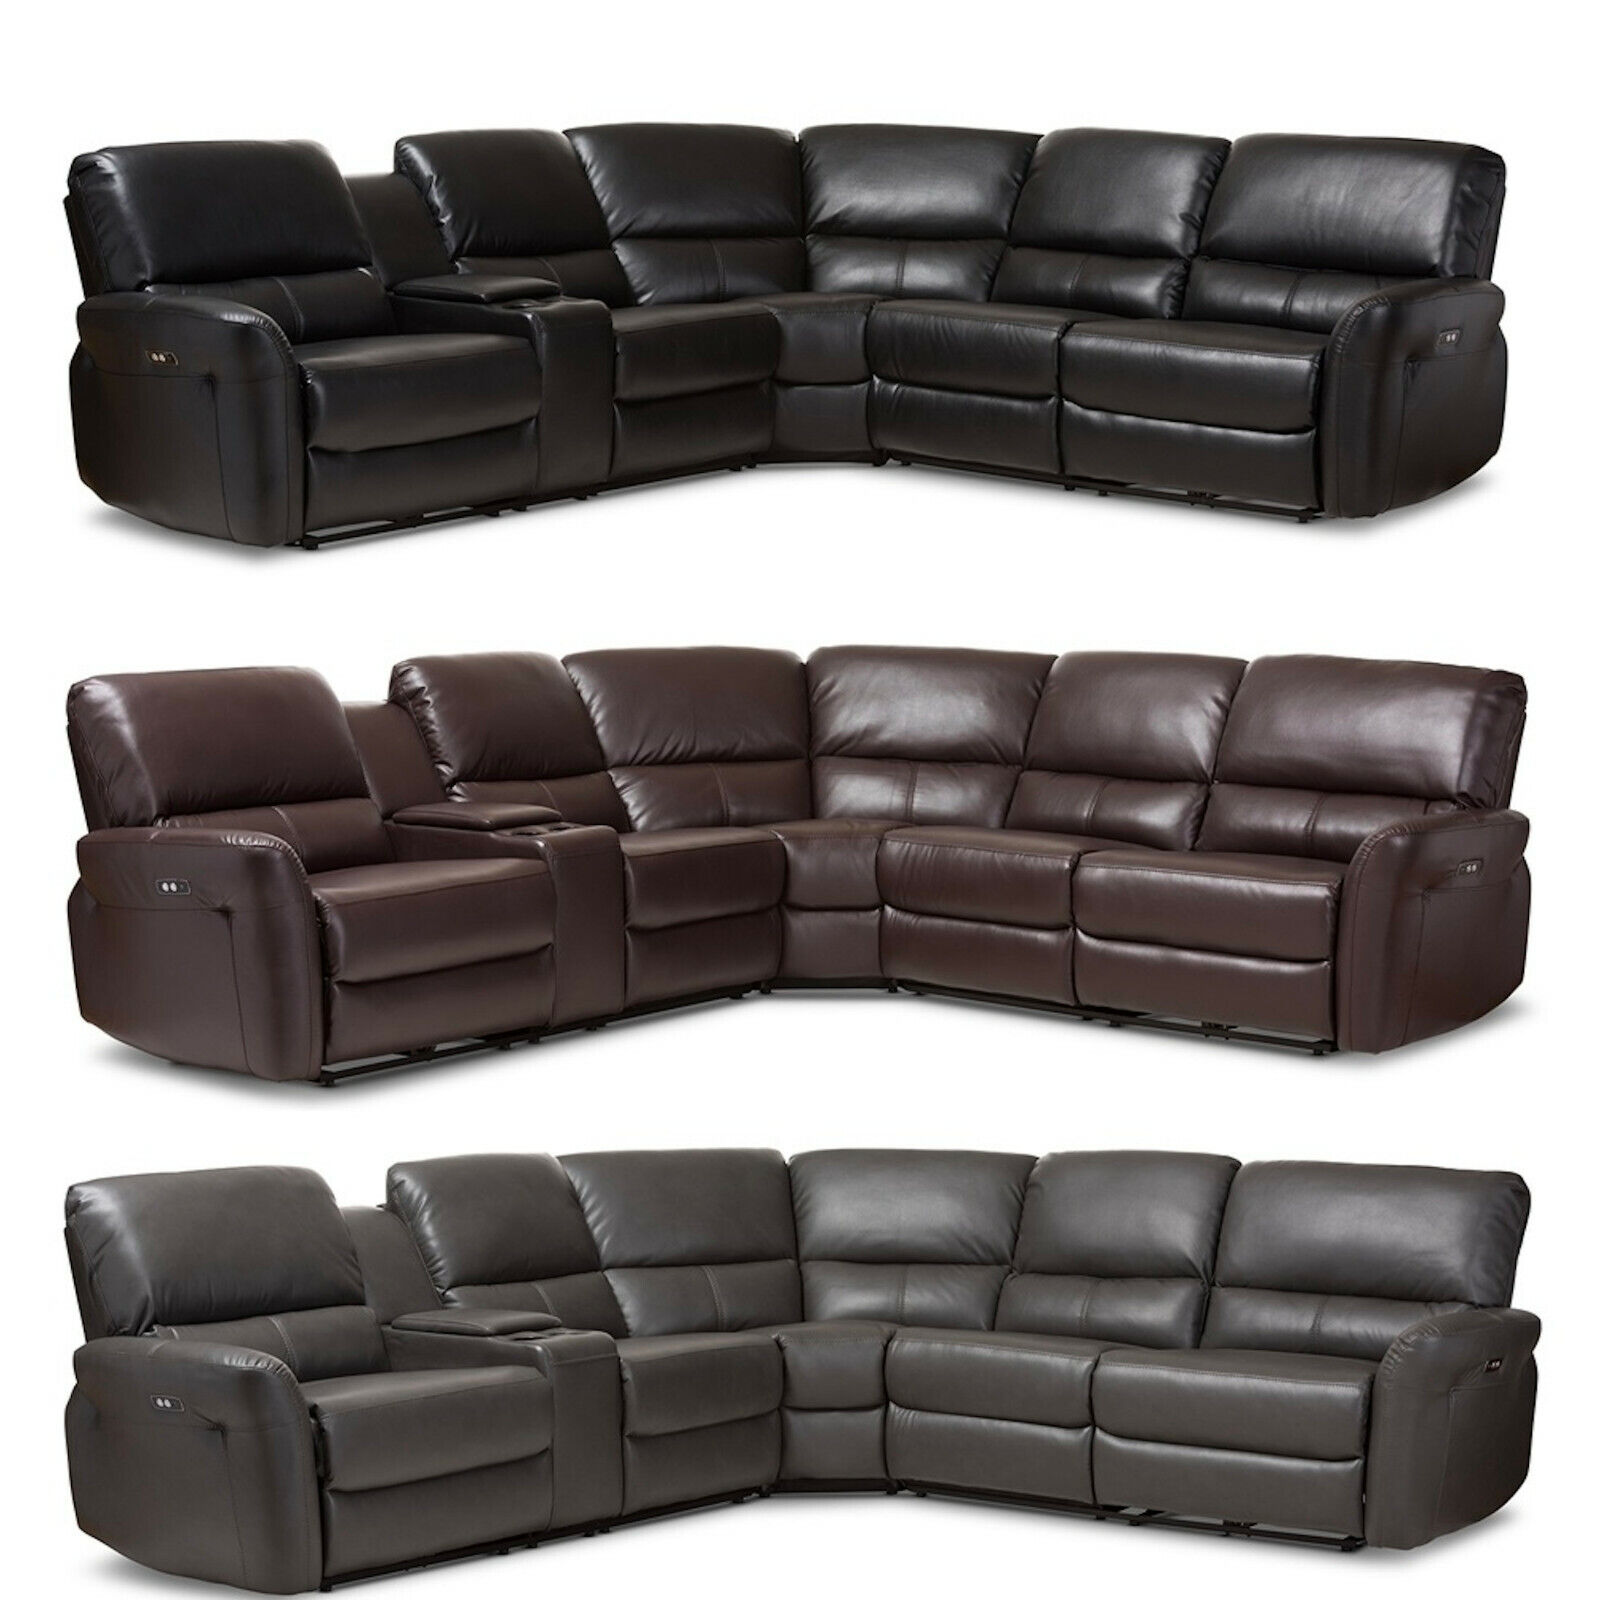 Black Brown Gray Leather* Power Reclining Theater Sectional